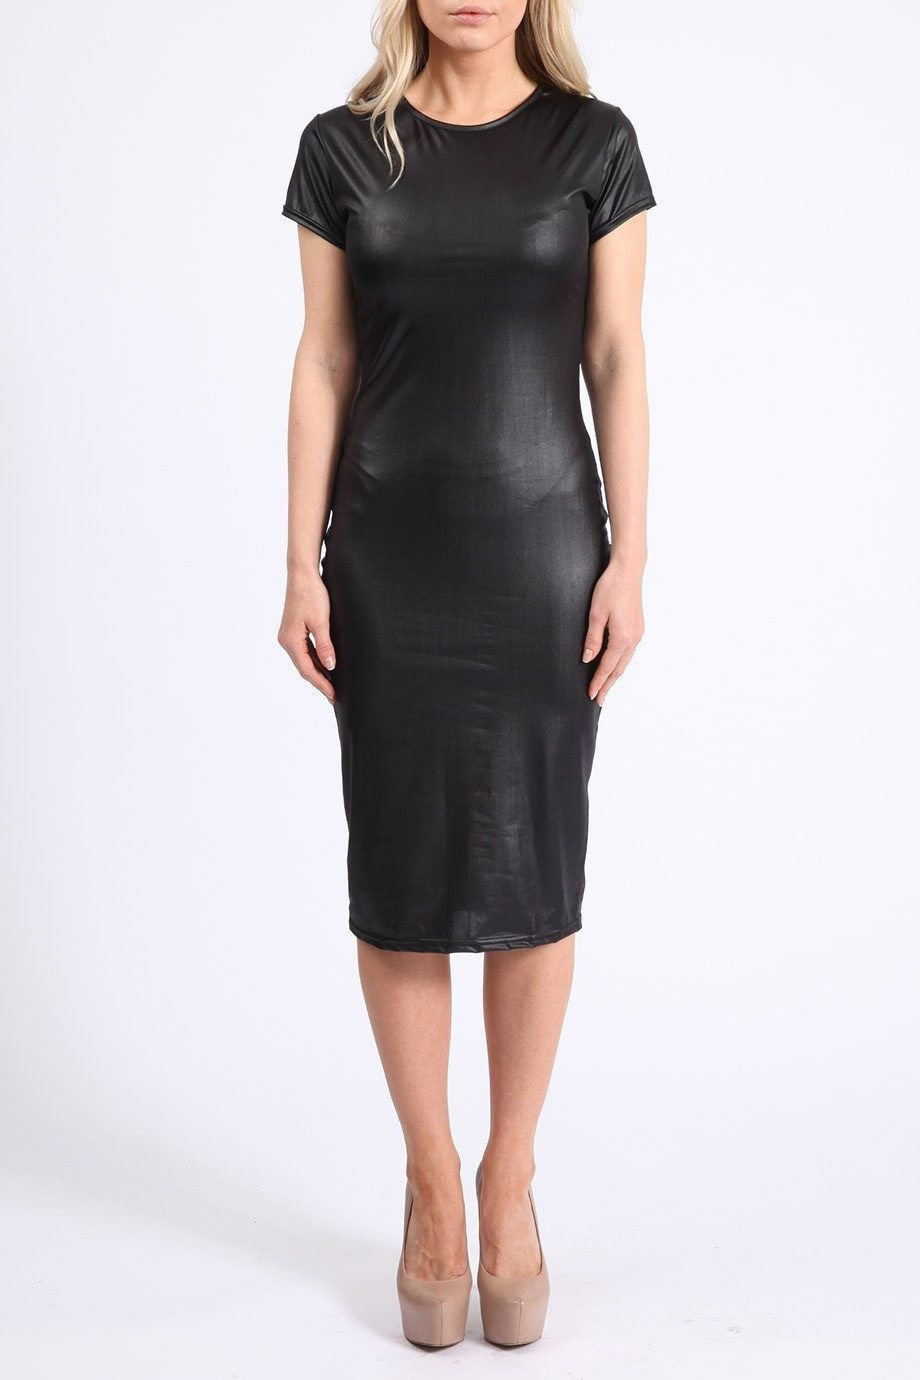 Kim K Leather Midi Dress - Budget Babe Couture